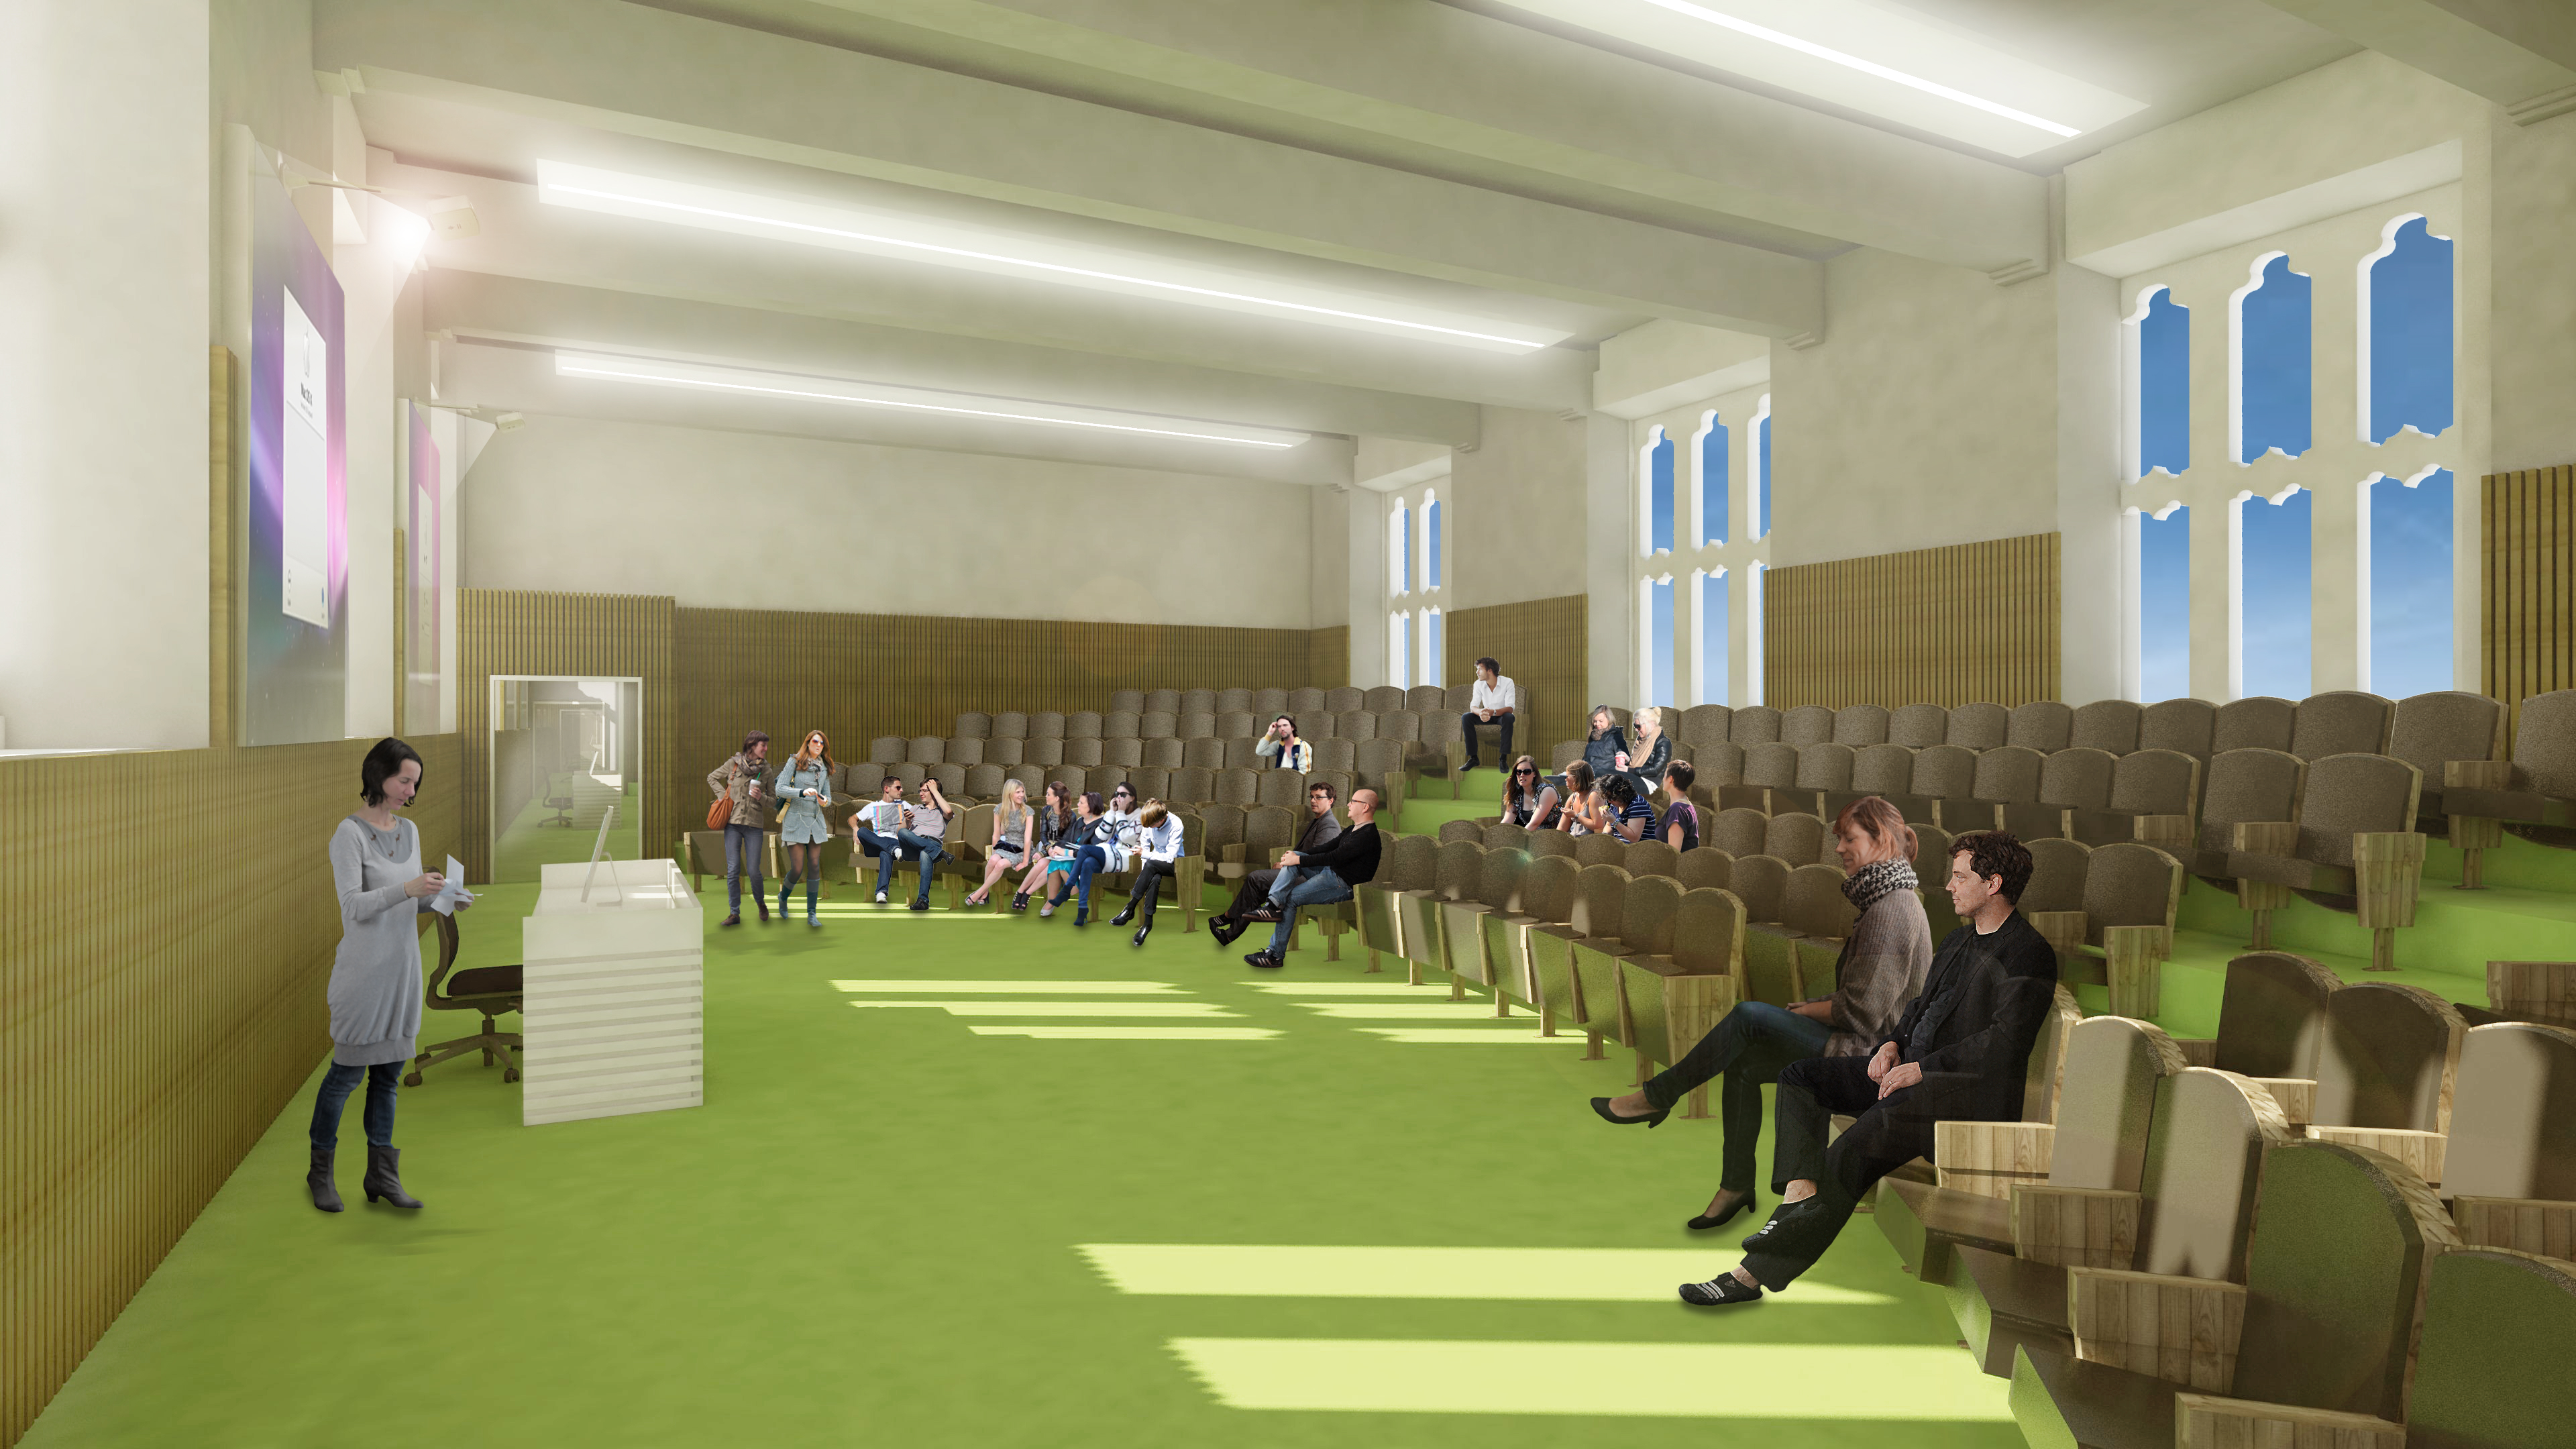 Concept images showing what the new spaces could look like at the University of Aberdeen.